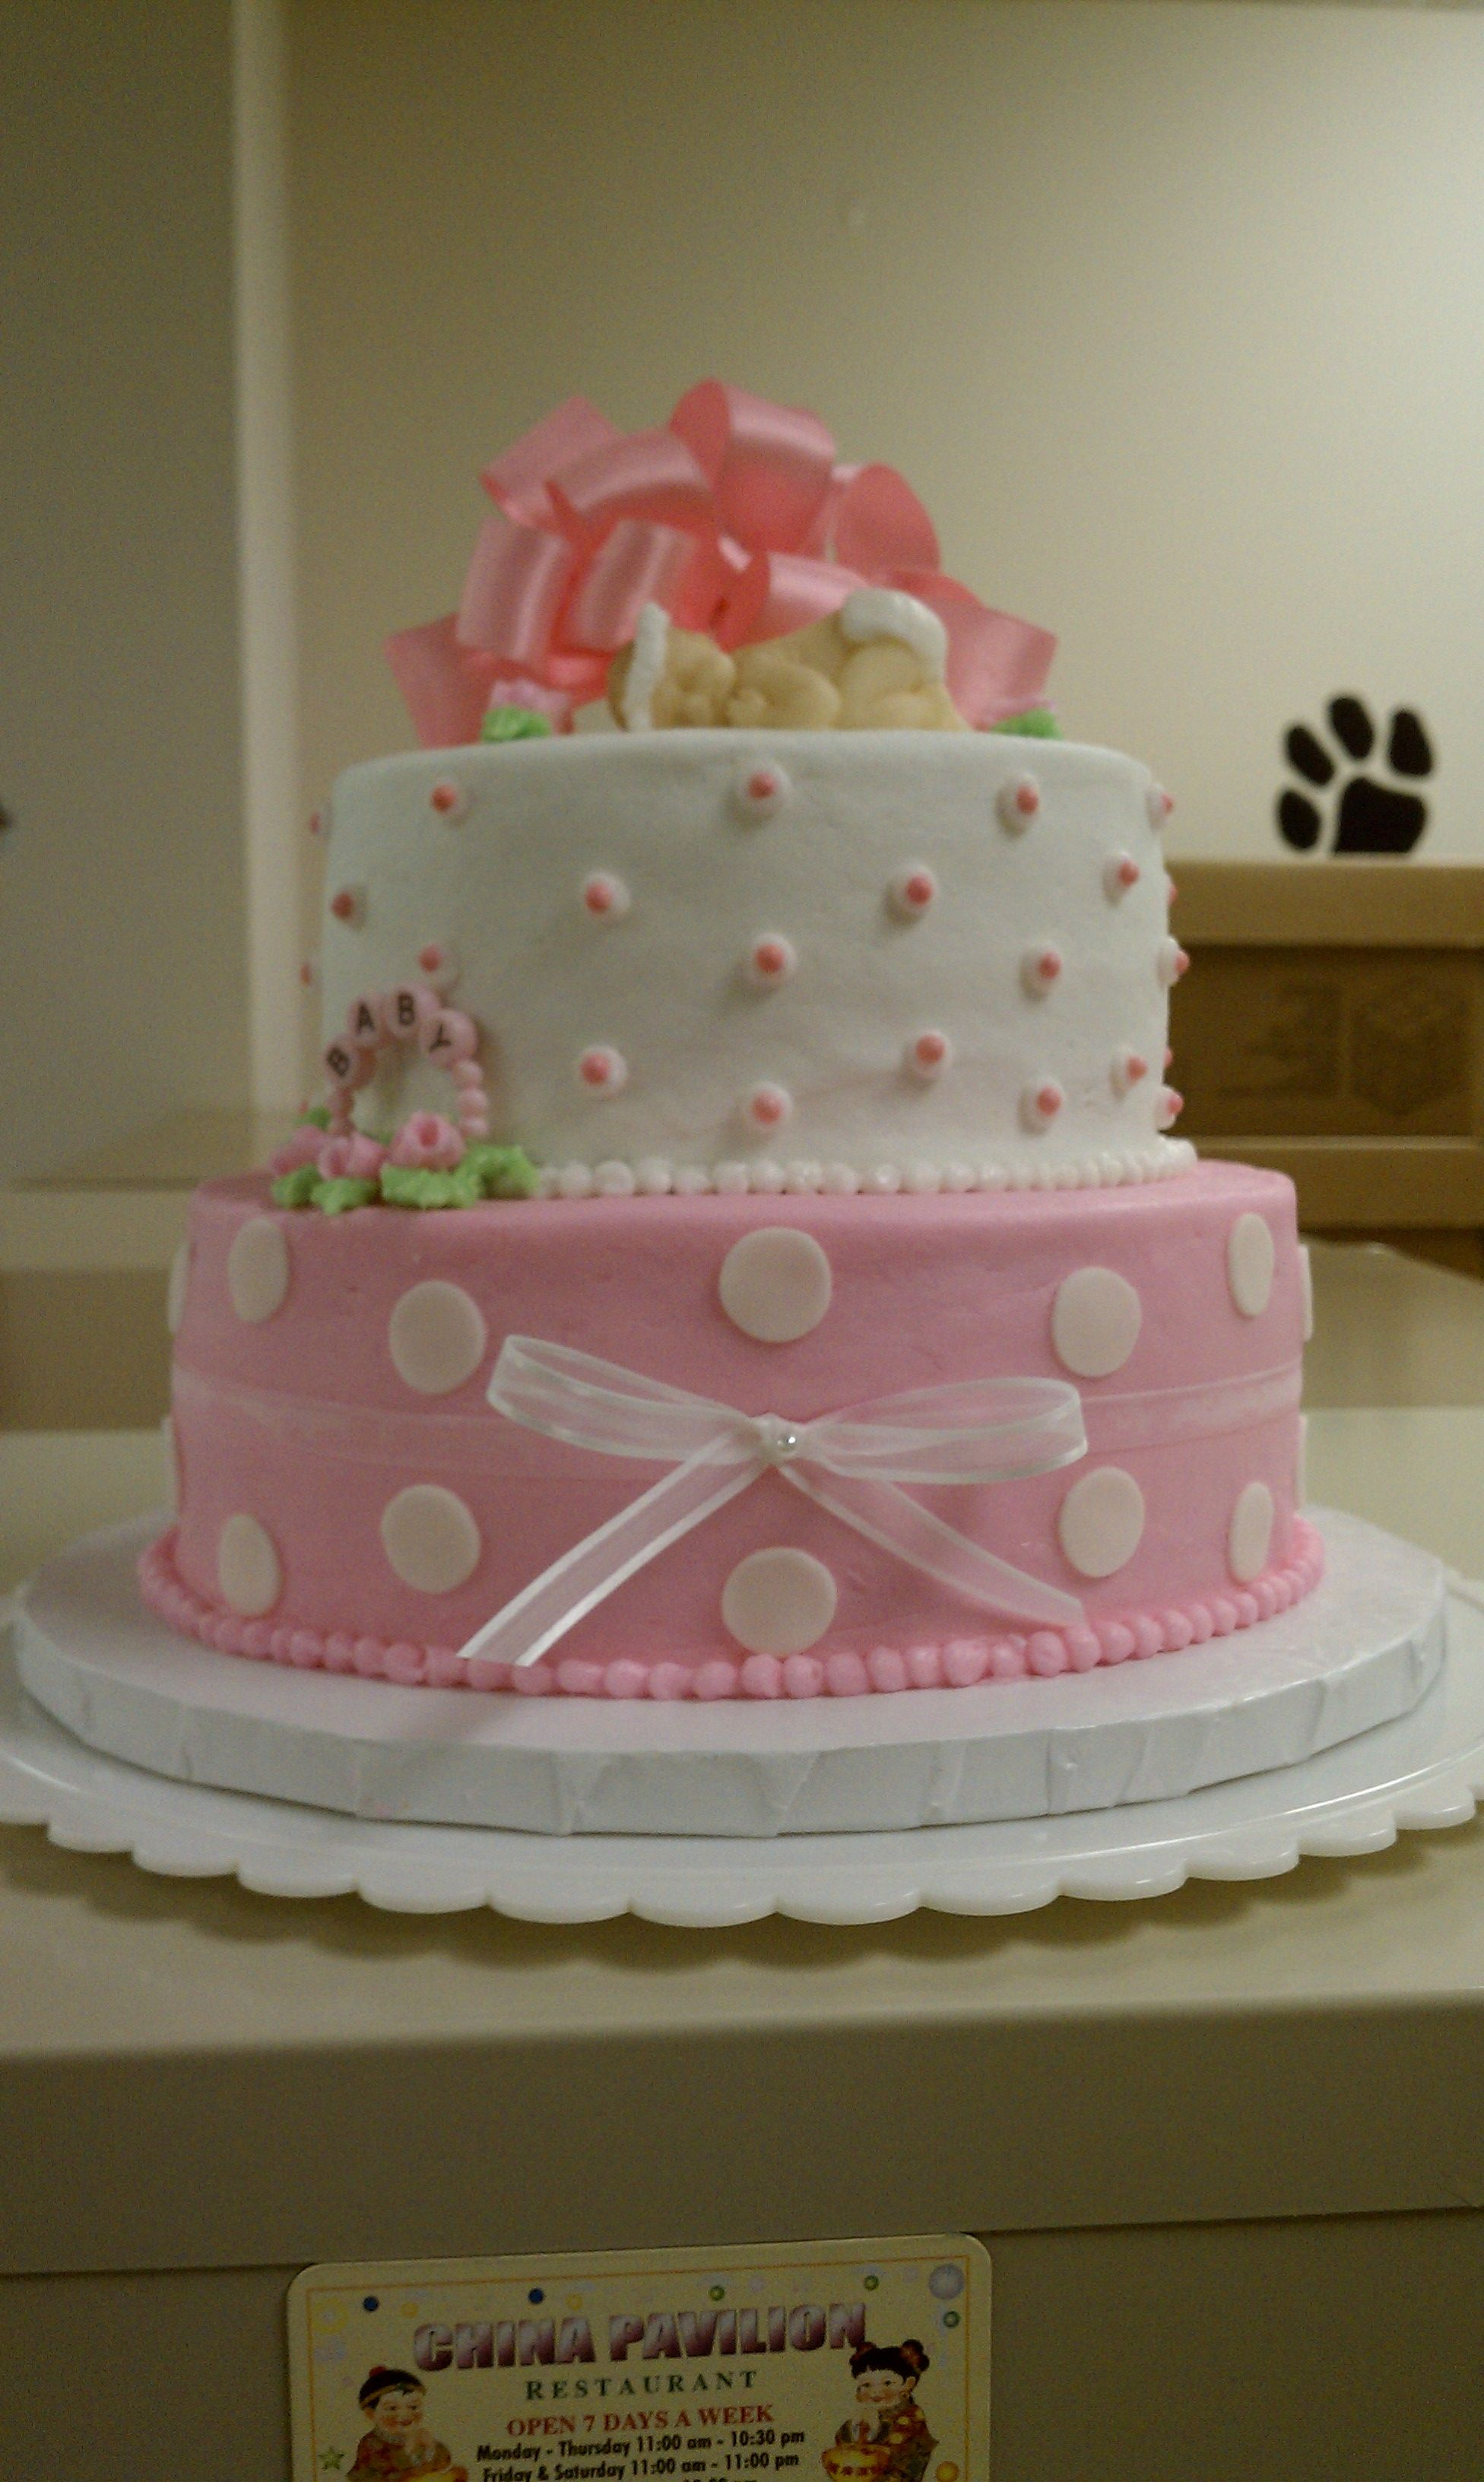 Girl Baby Shower Cake 8 6 Inch Layers Buttercream Icing Baby Is Made From Gumpaste